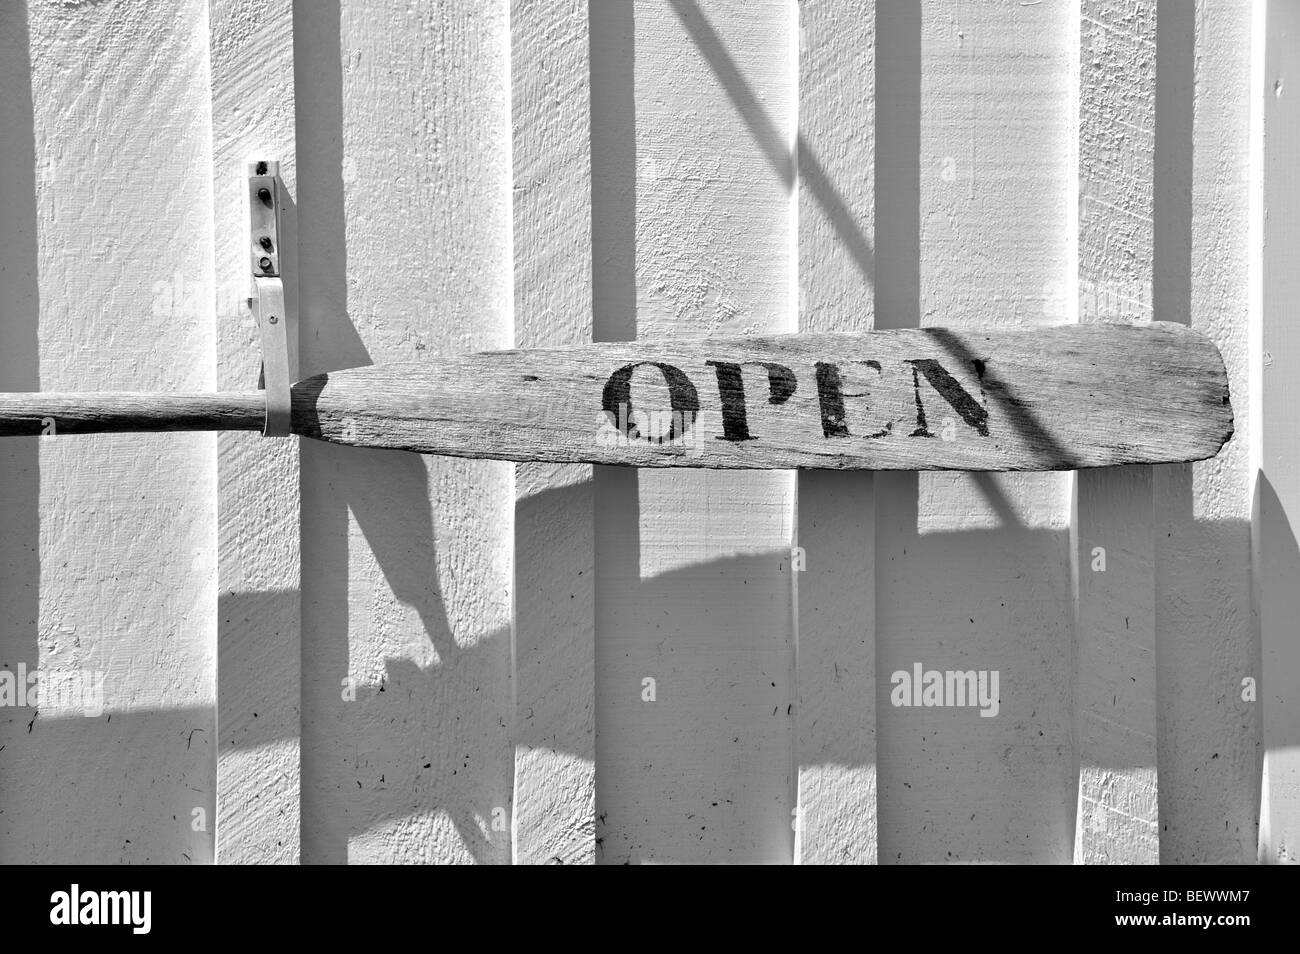 Open sign made from a wooden oar hangs outside the Marshall Point Lighthouse Museum, Port Clyde, Maine, USA. - Stock Image